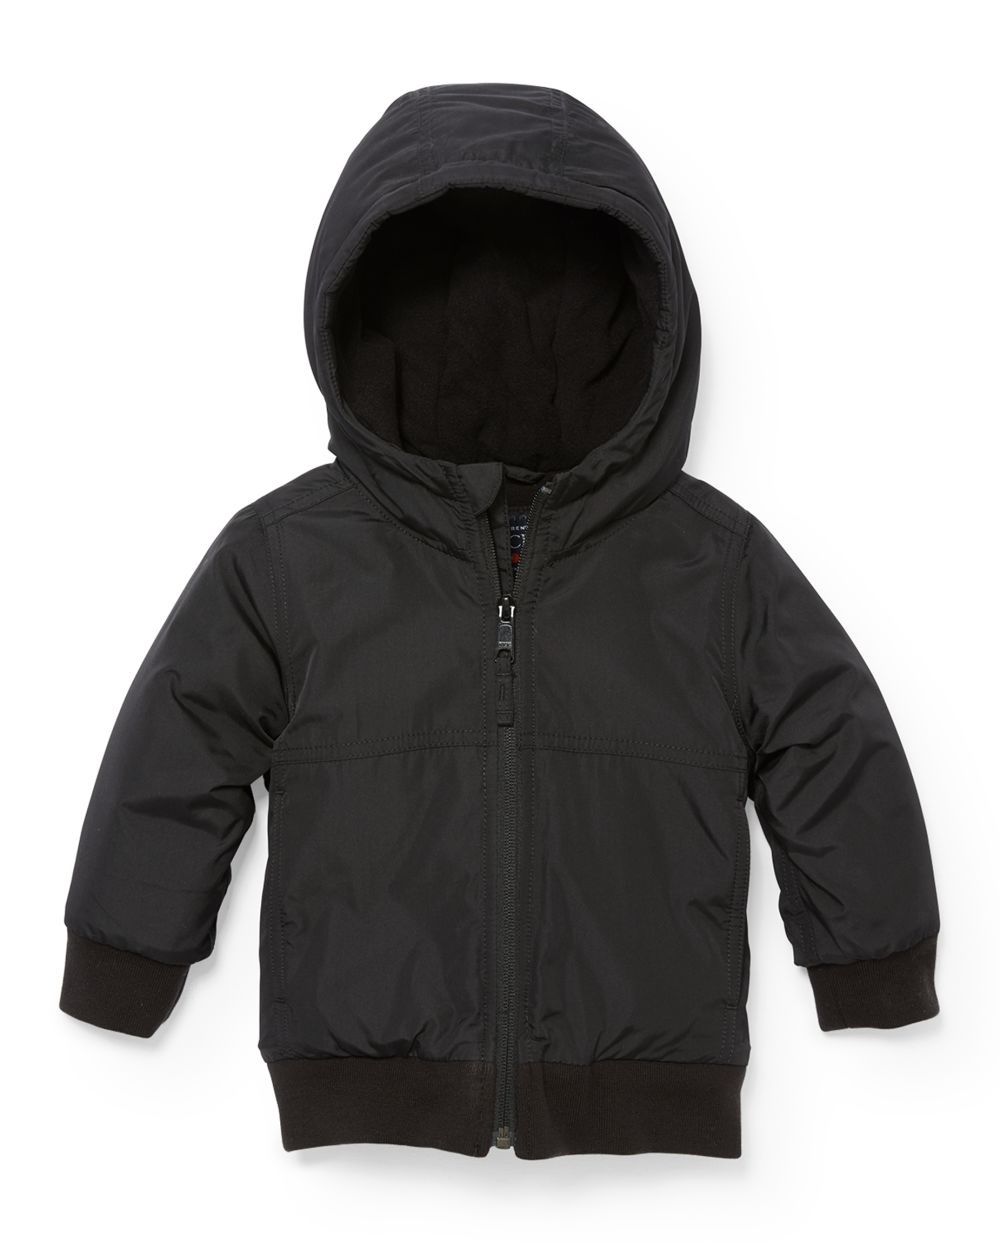 Toddler Boys Hooded Bomber Jacket